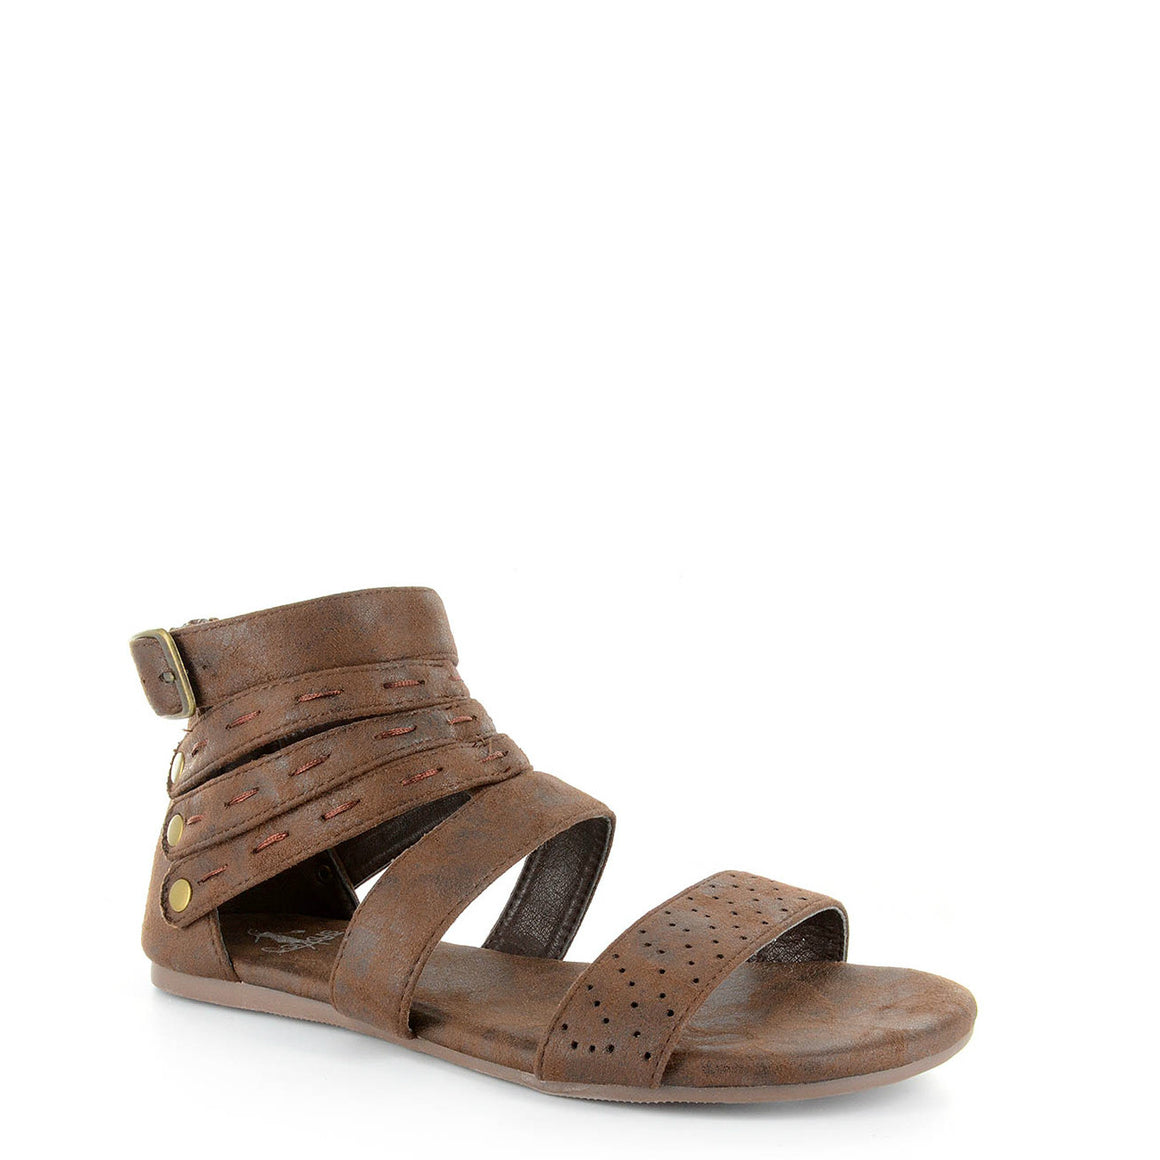 Corkys Women's Terrance Gladiator Sandal - Chocolate Distressed 41-0133